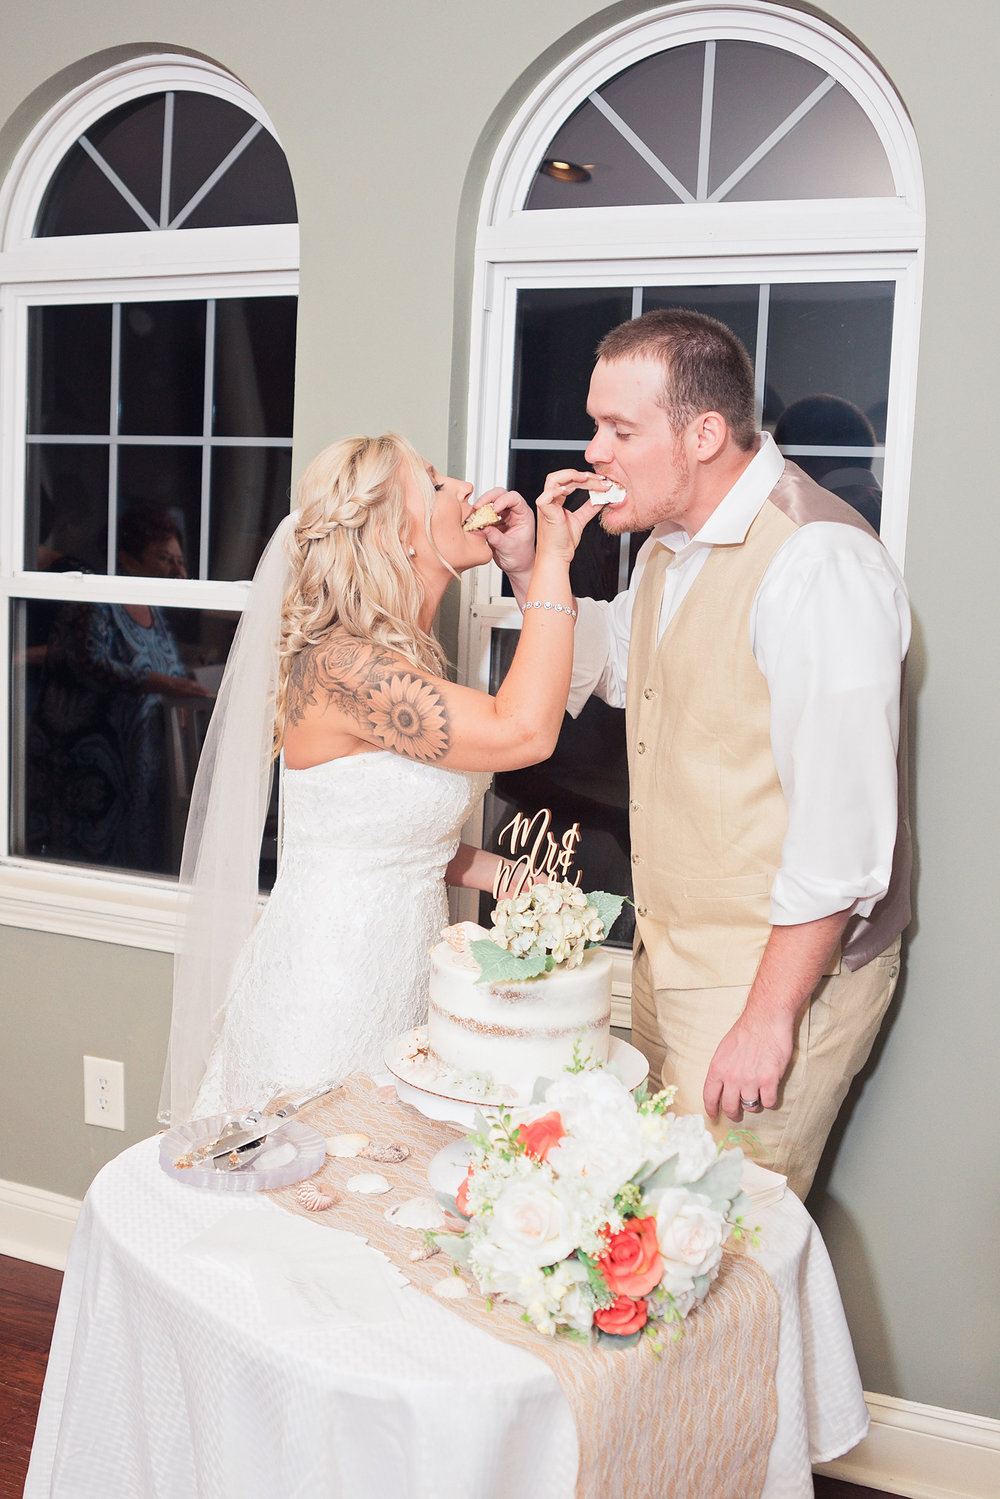 Cake_and_party (16).jpg